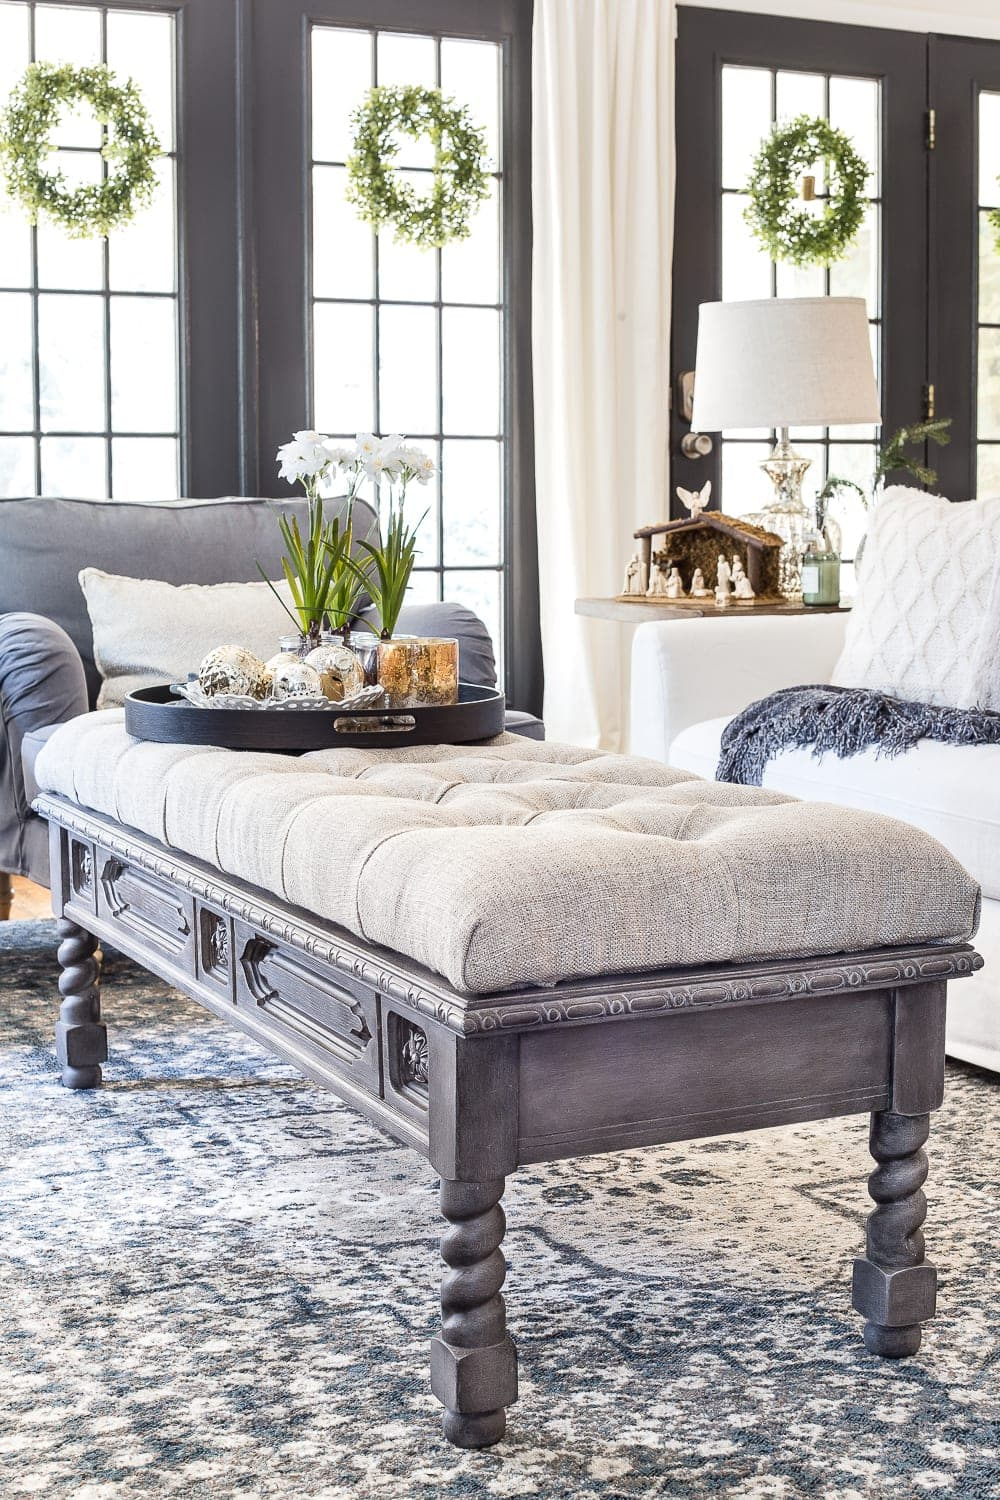 Ottoman Coffee Table On Photo of Creative